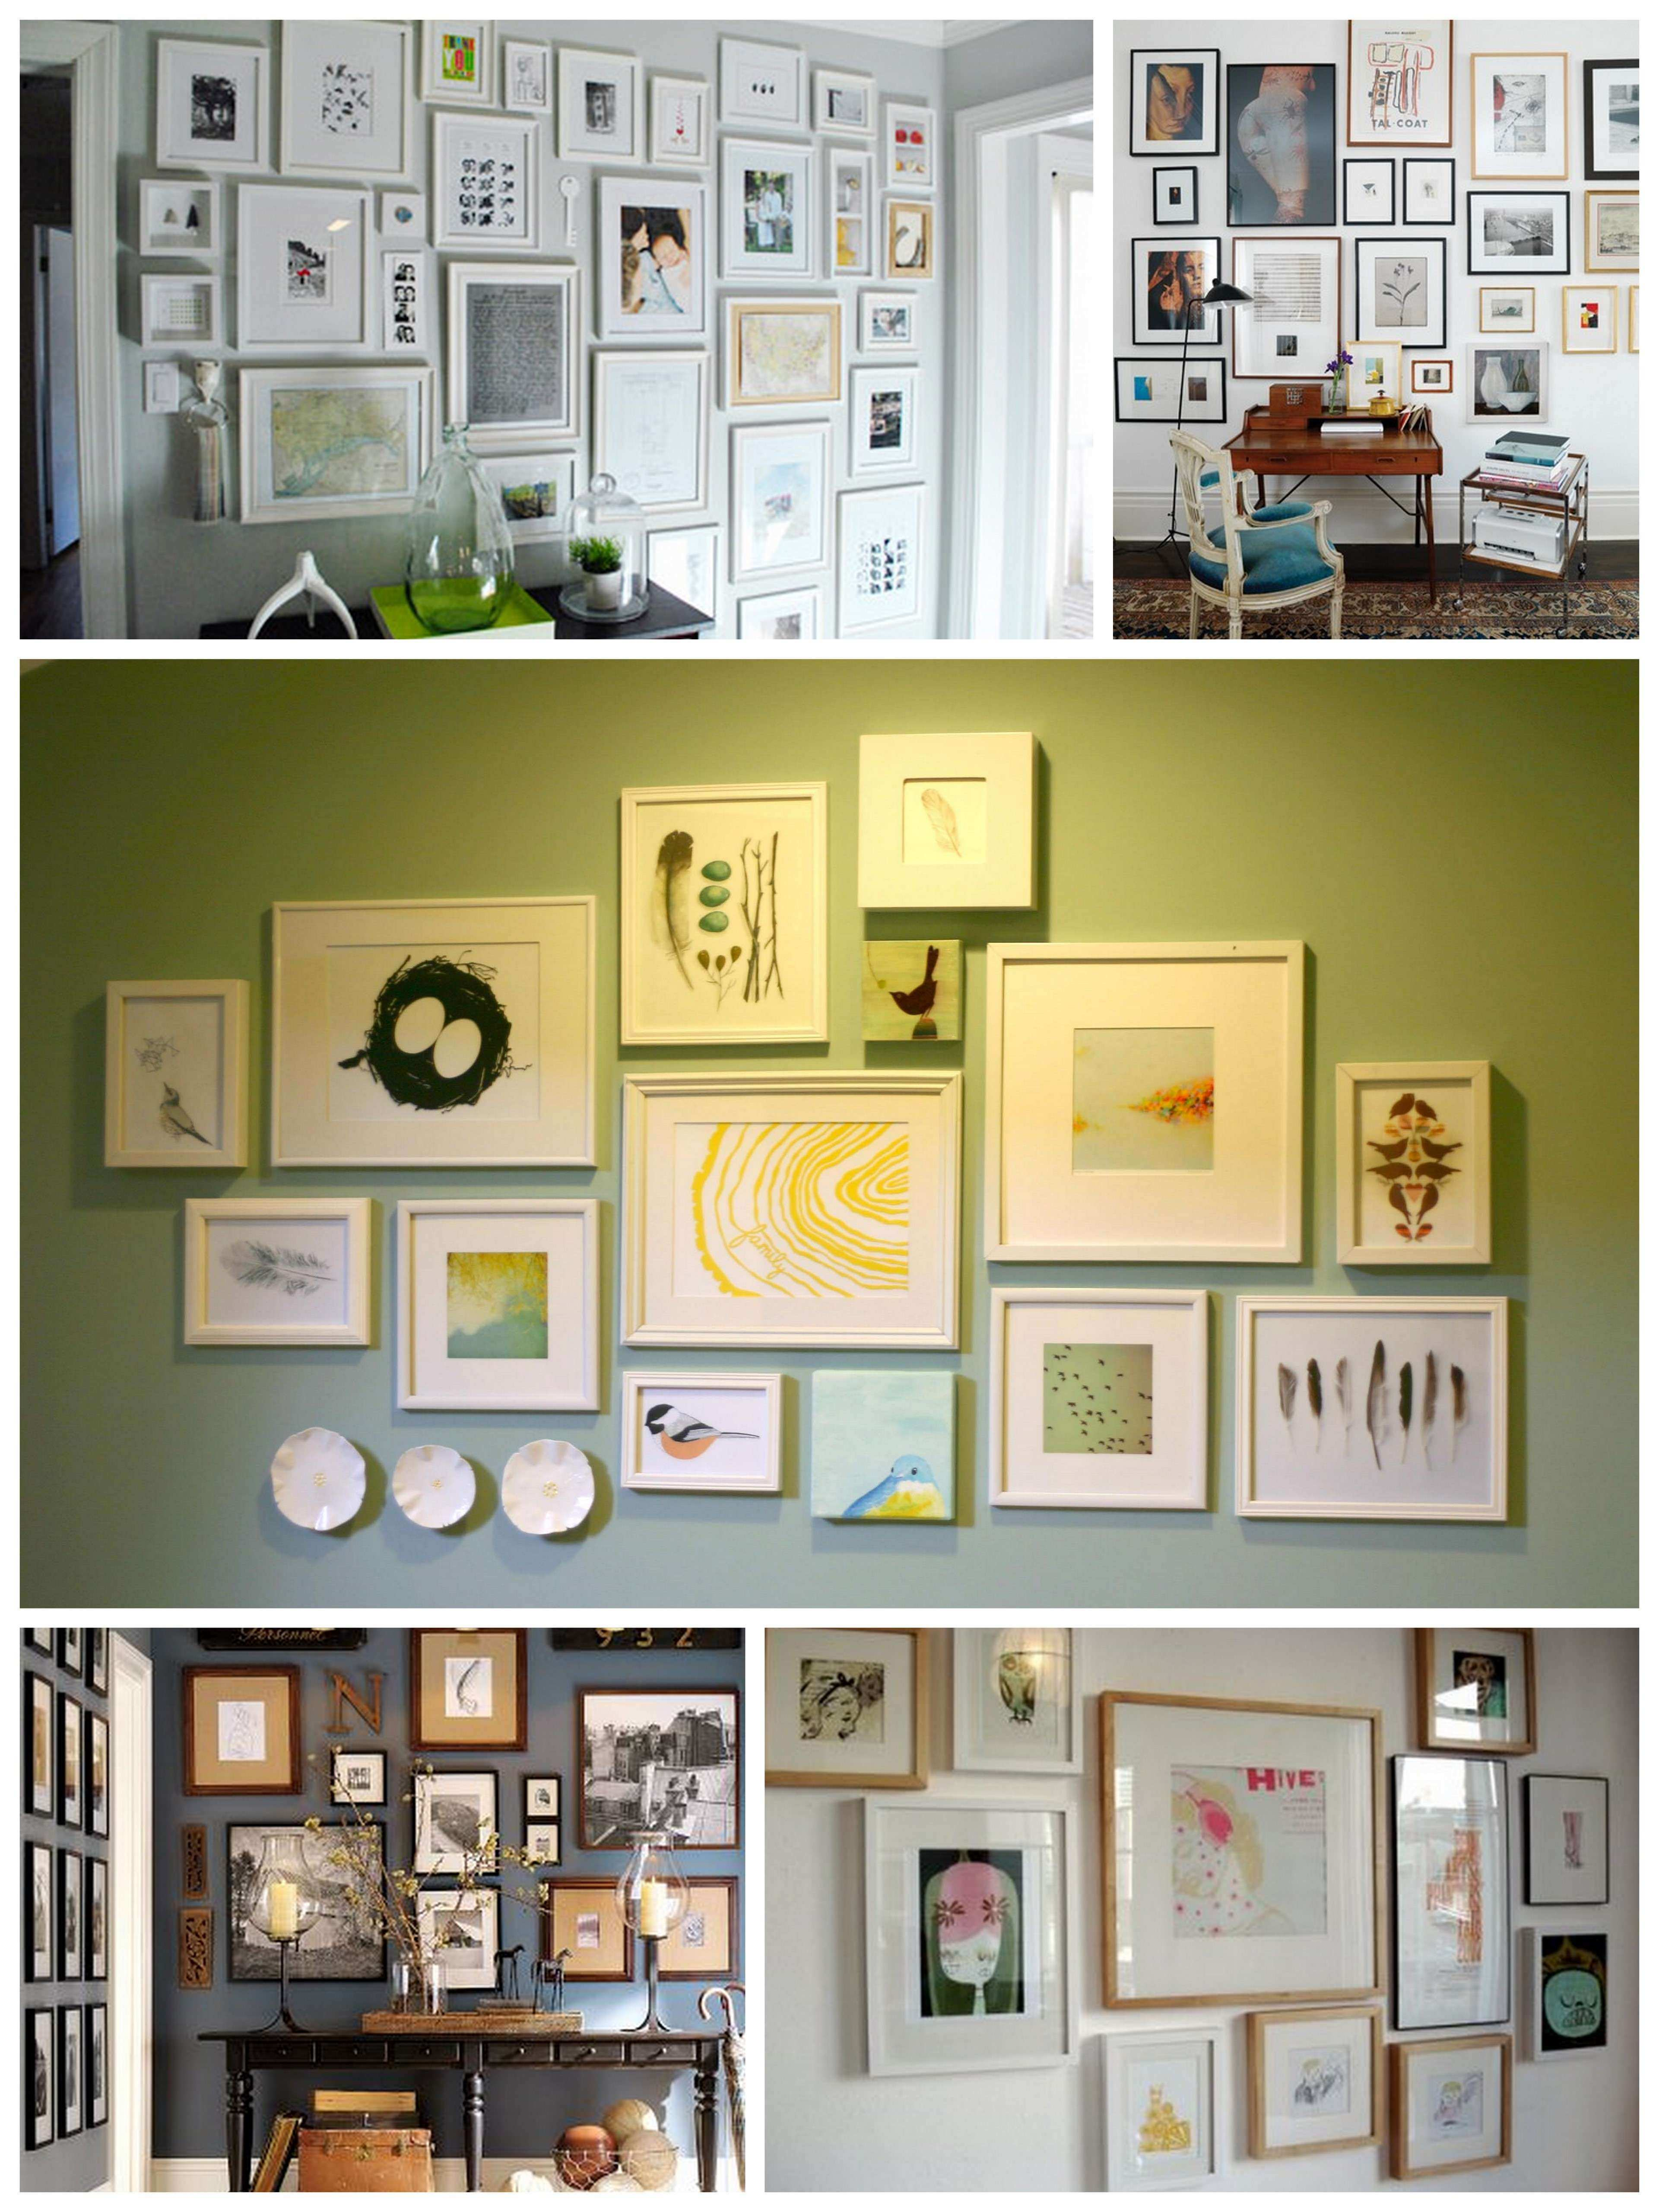 Fantastic Wall Art Frames Image Collection - Wall Art Collections ...